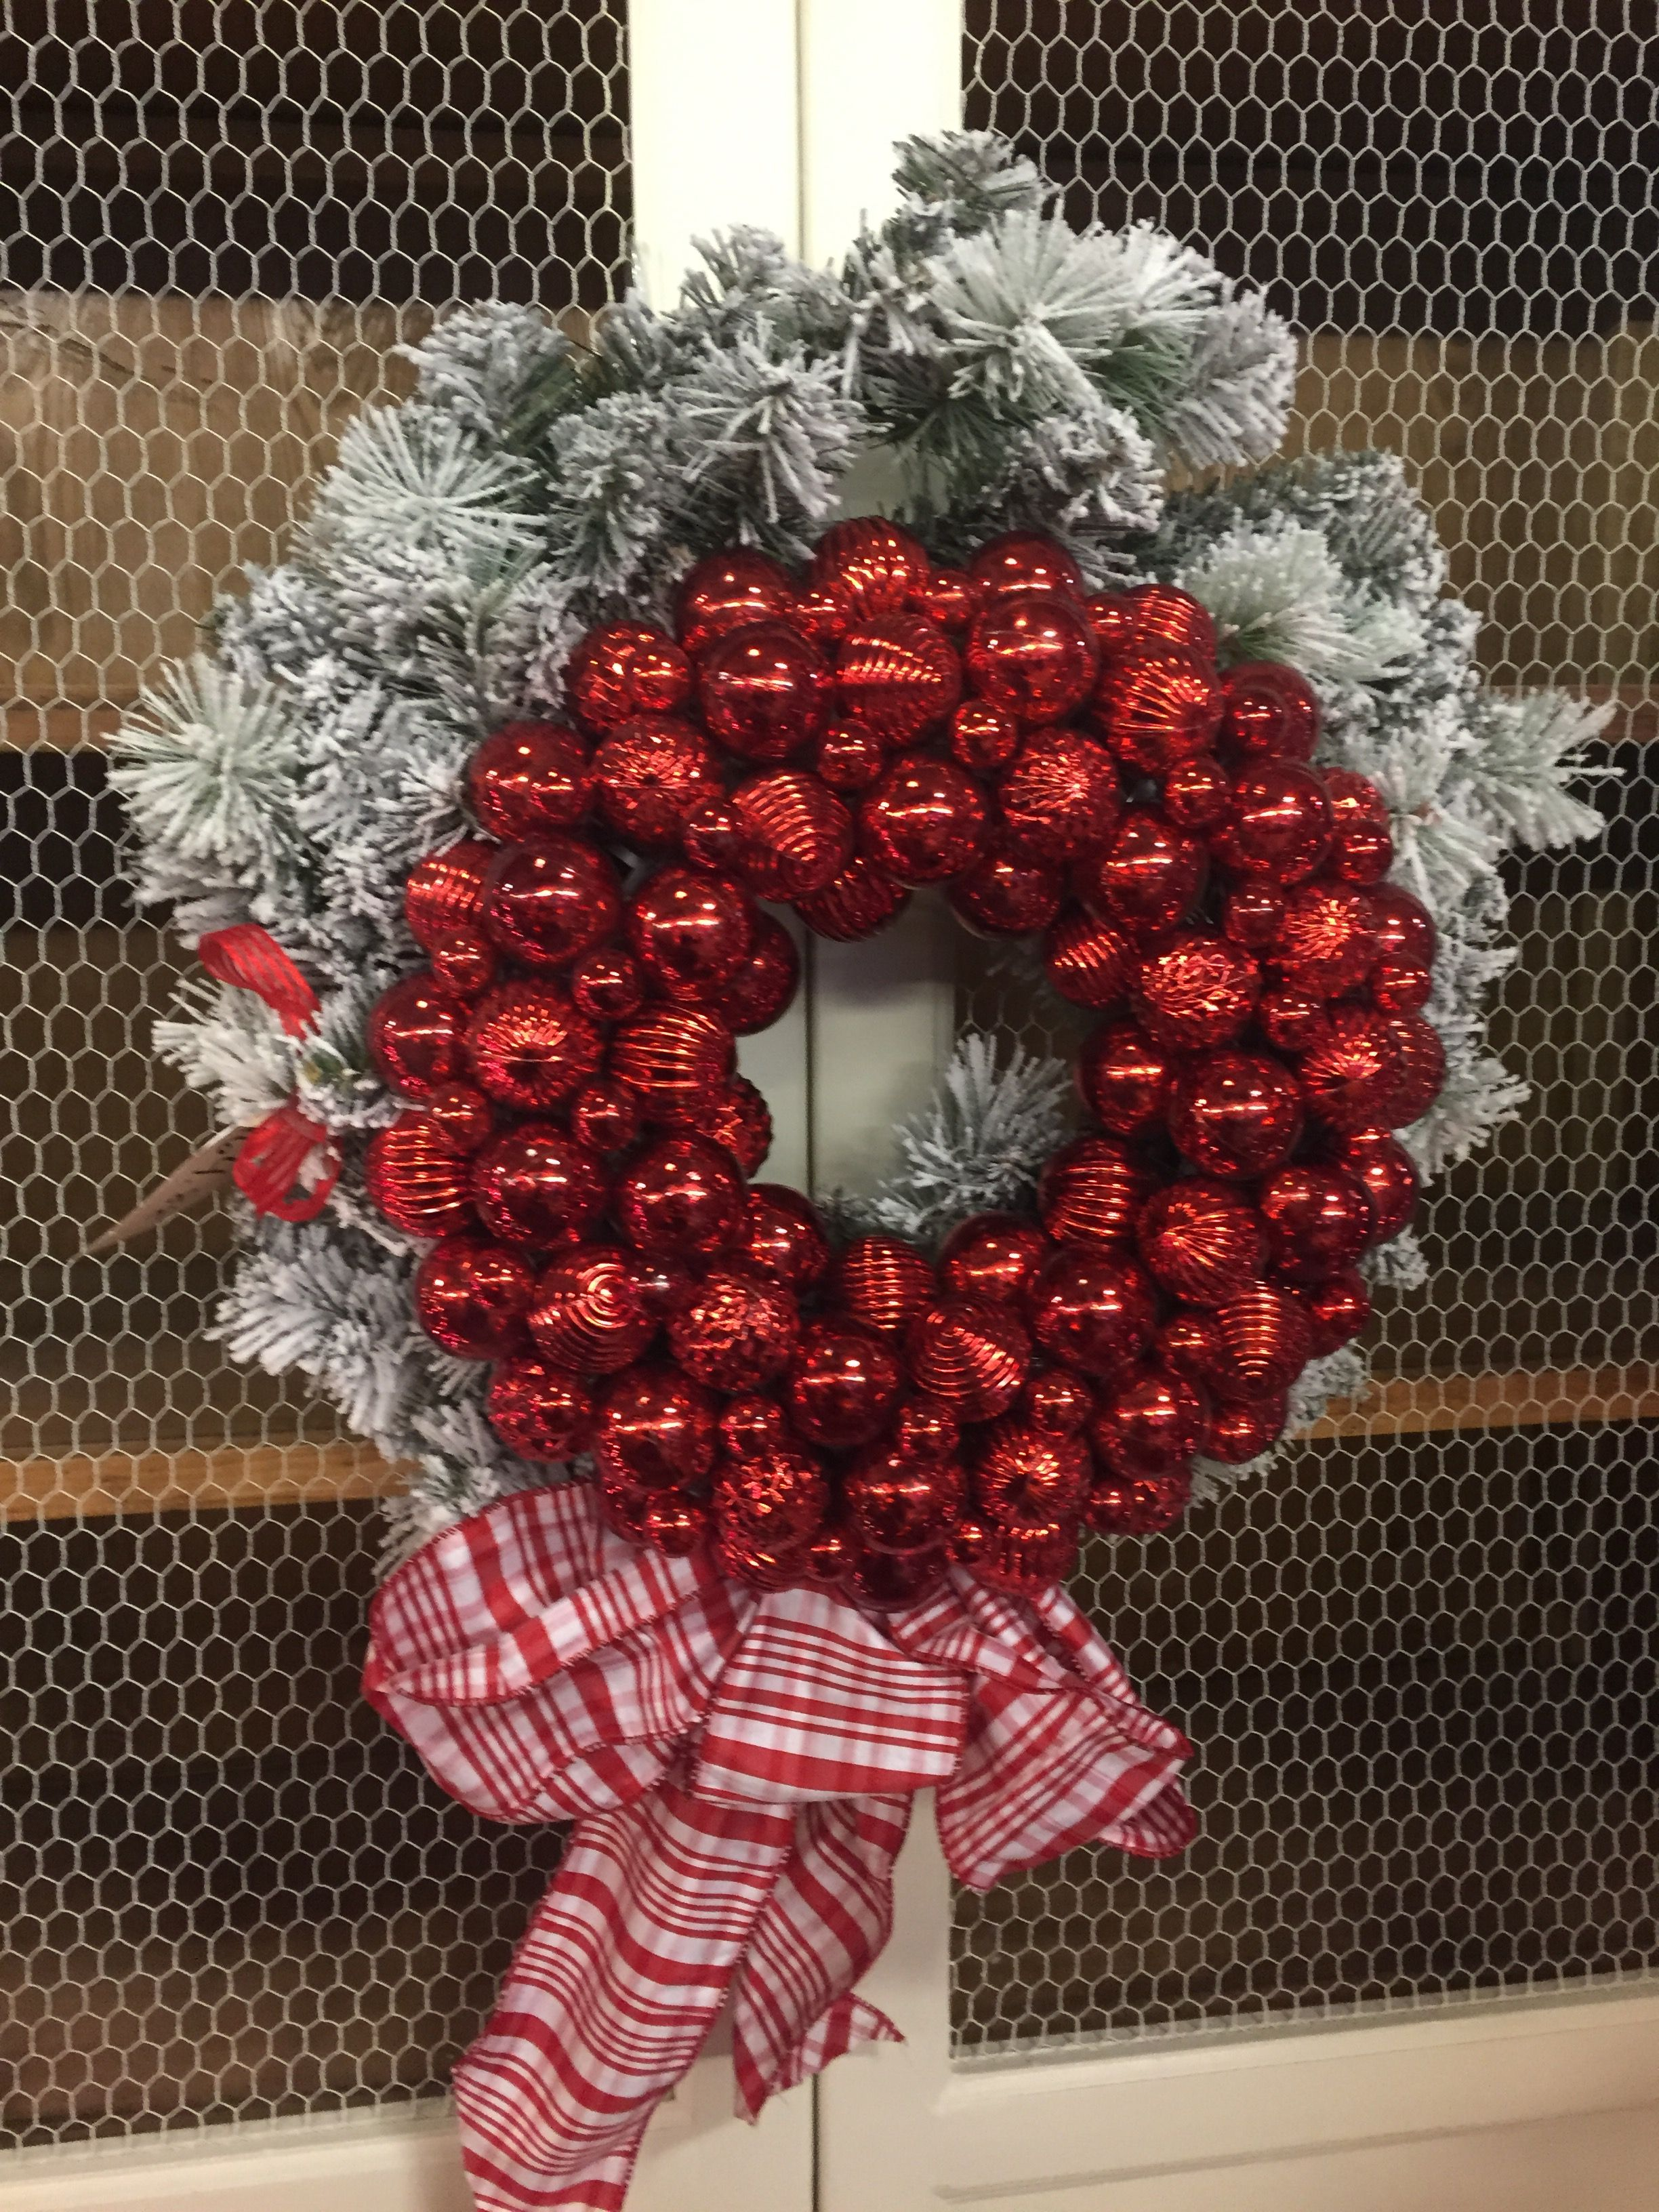 Wreaths, Christmas, Garlands, Natal, Xmas, Door Wreaths, Navidad, Deco Mesh